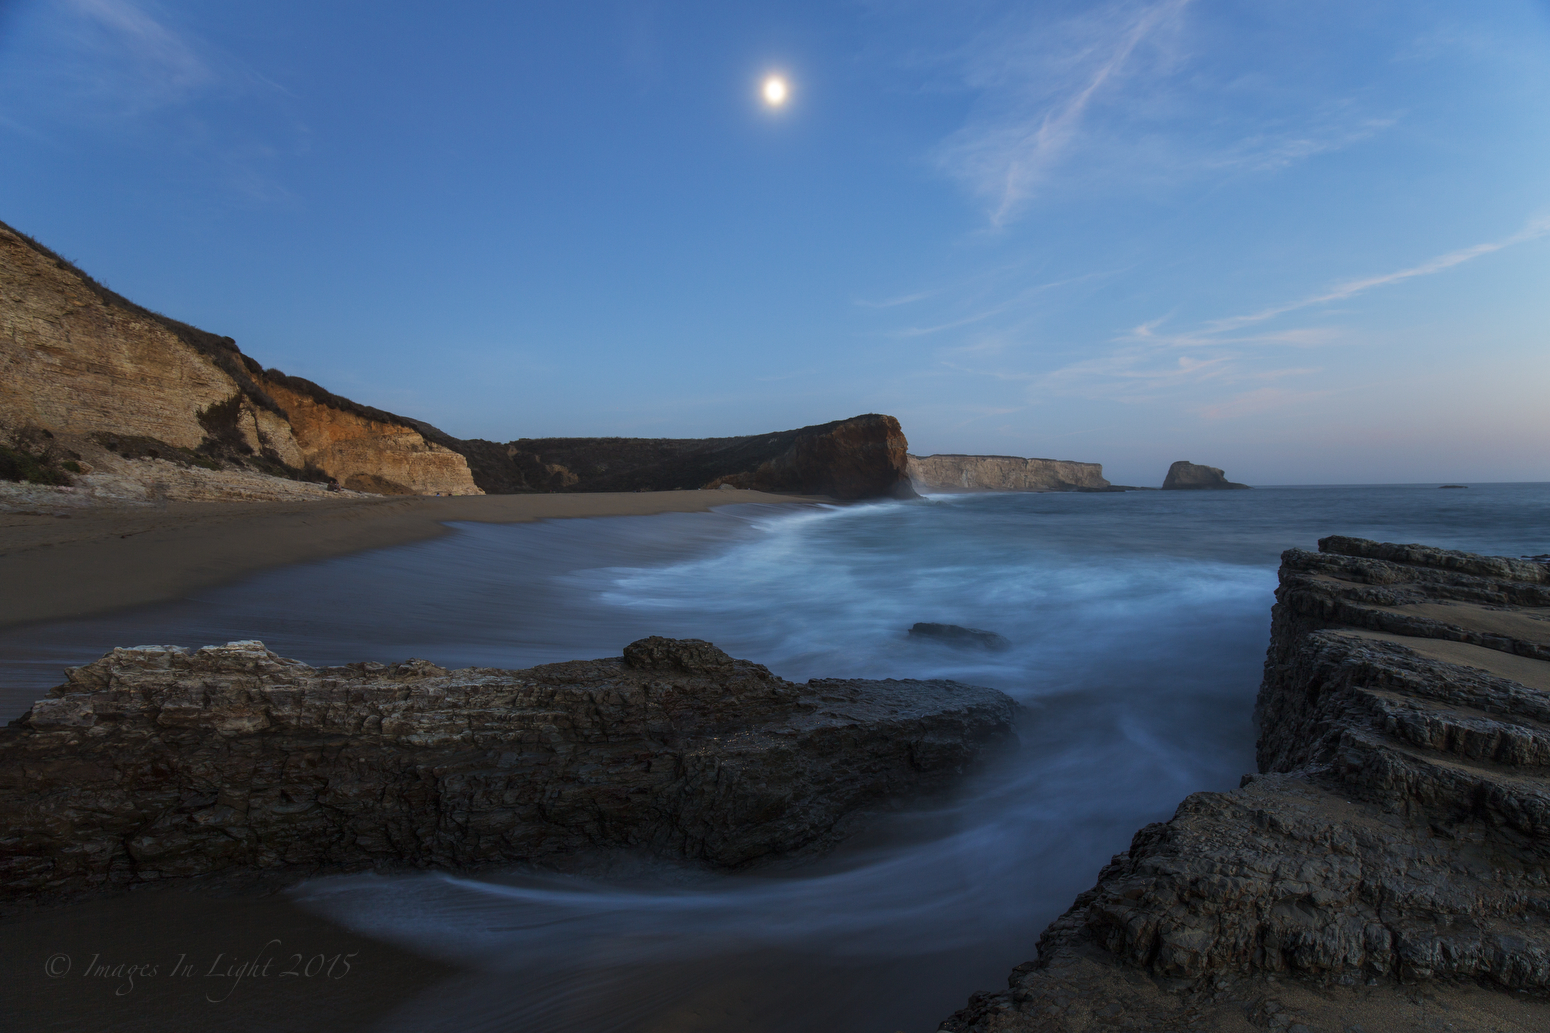 Moonrise at Panther Beach